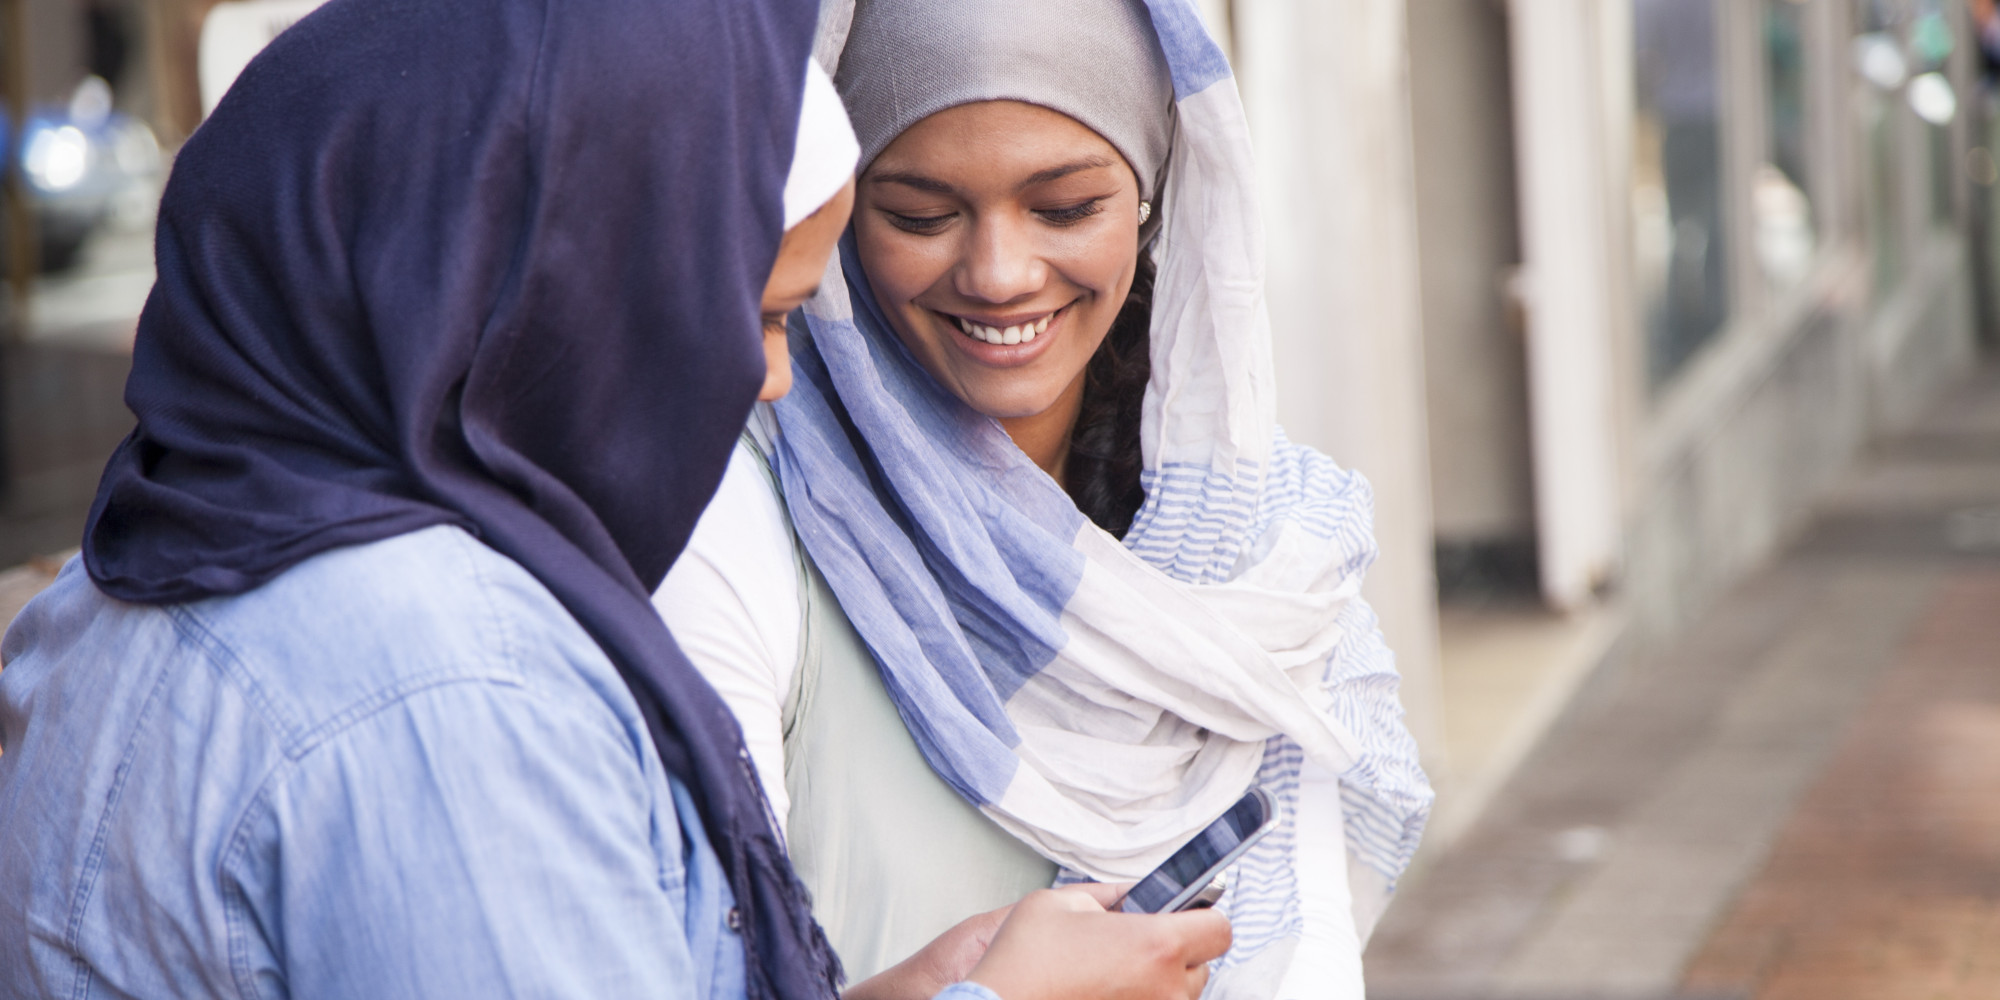 muslim single men in hillsgrove Muslimlifepartnercom provides muslim marriage and matrimonial services for single muslims all over the world single muslim men and muslim women can register for free, search and contact other single muslims.